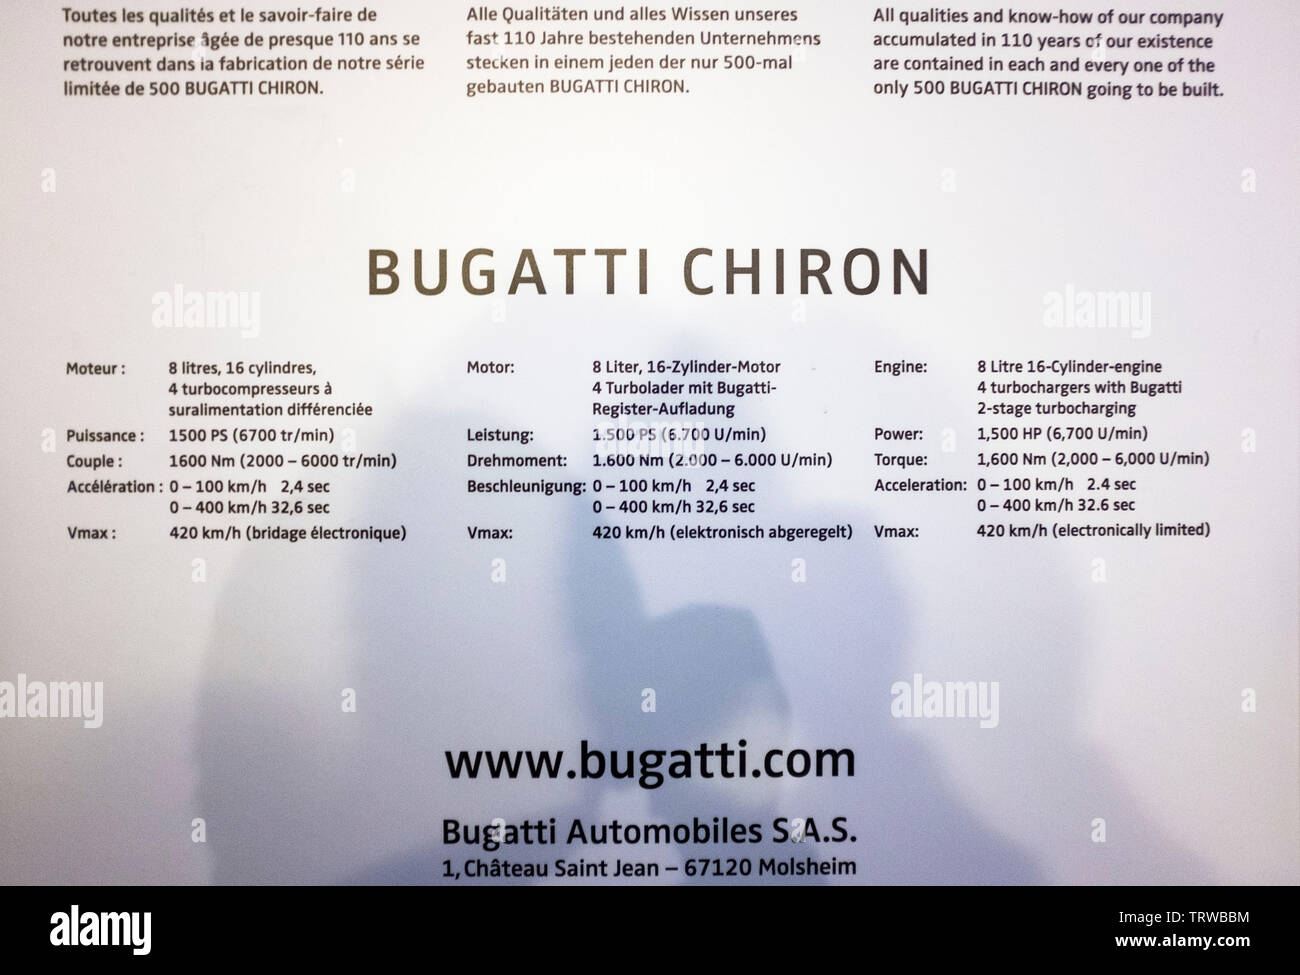 Bugatti Chiron car, technical specifications datasheet, Alsace, France, Europe, Stock Photo